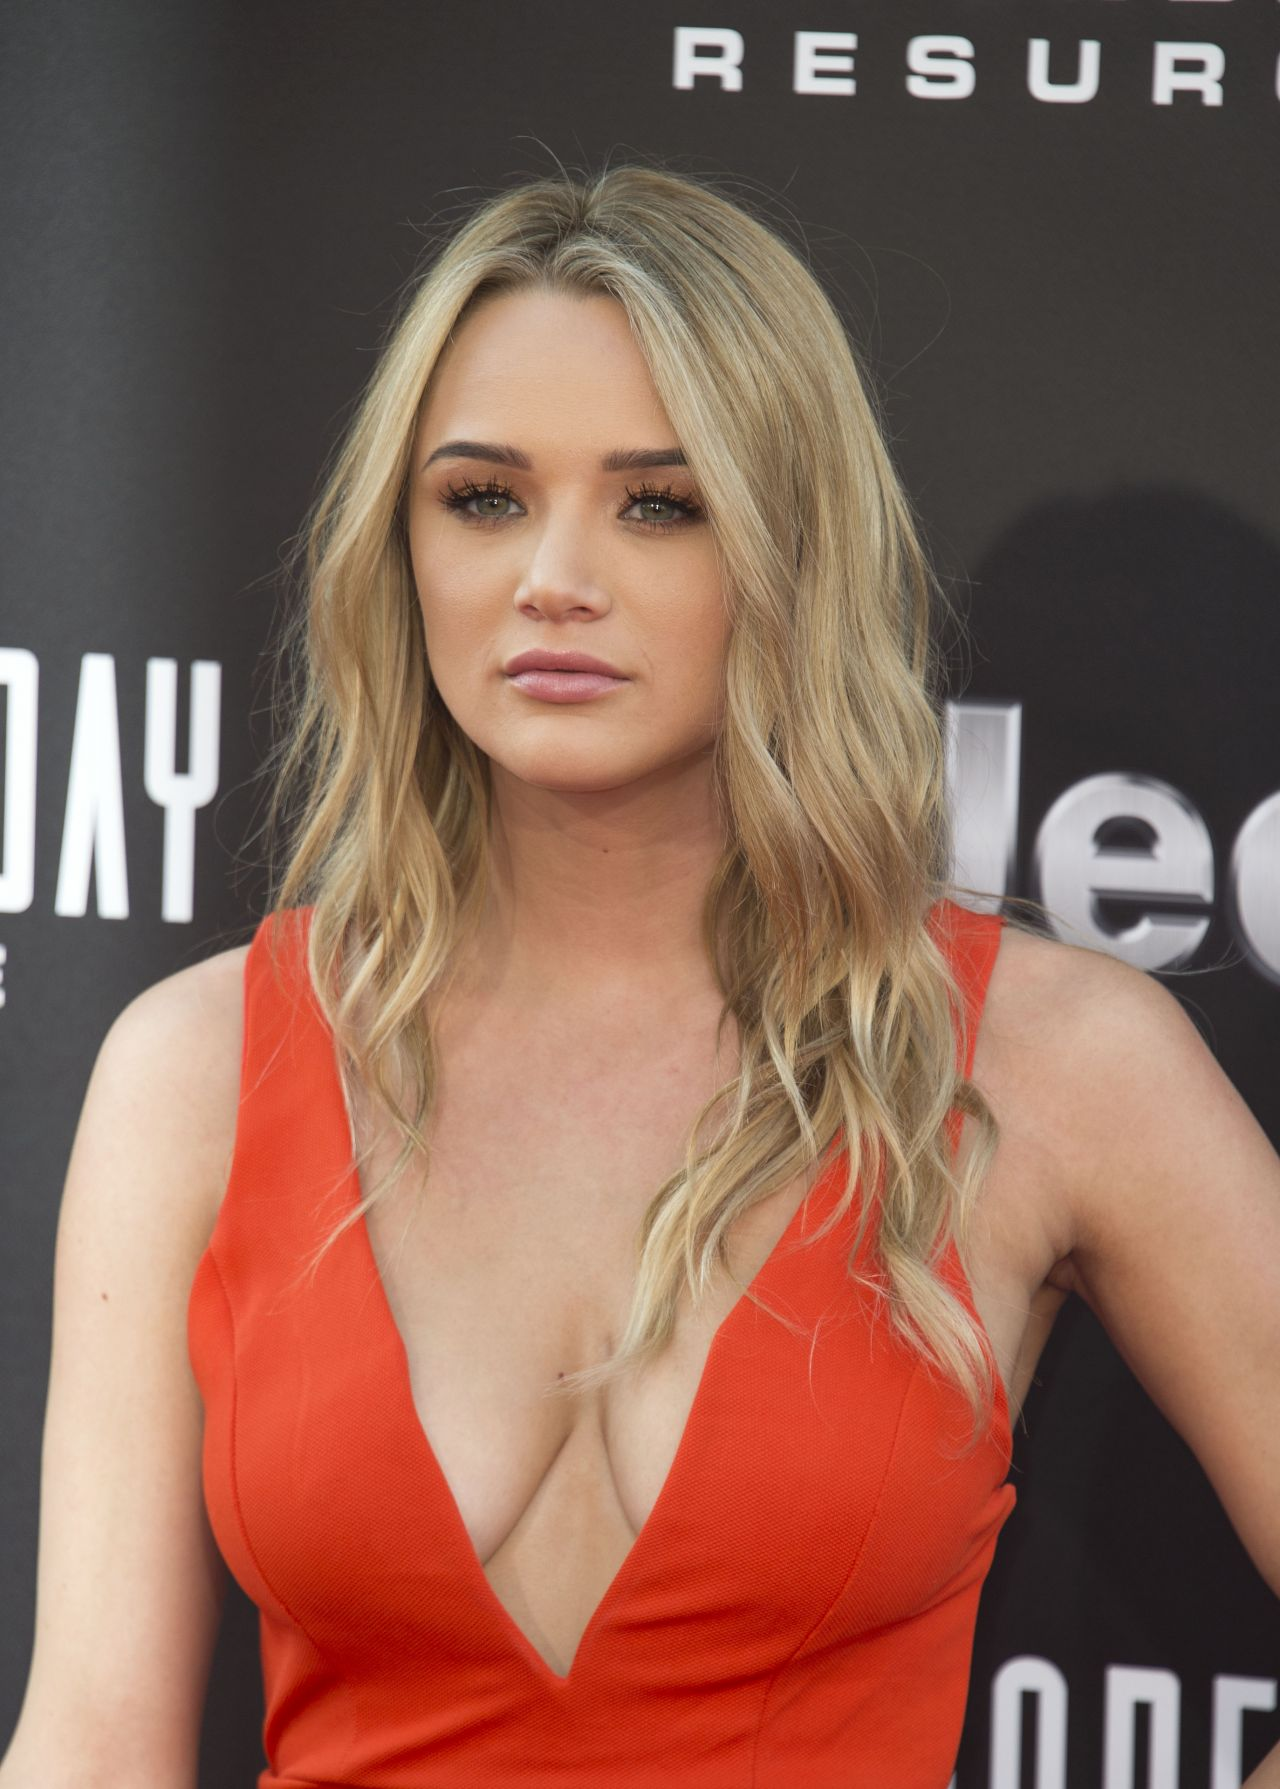 Image result for HUNTER KING